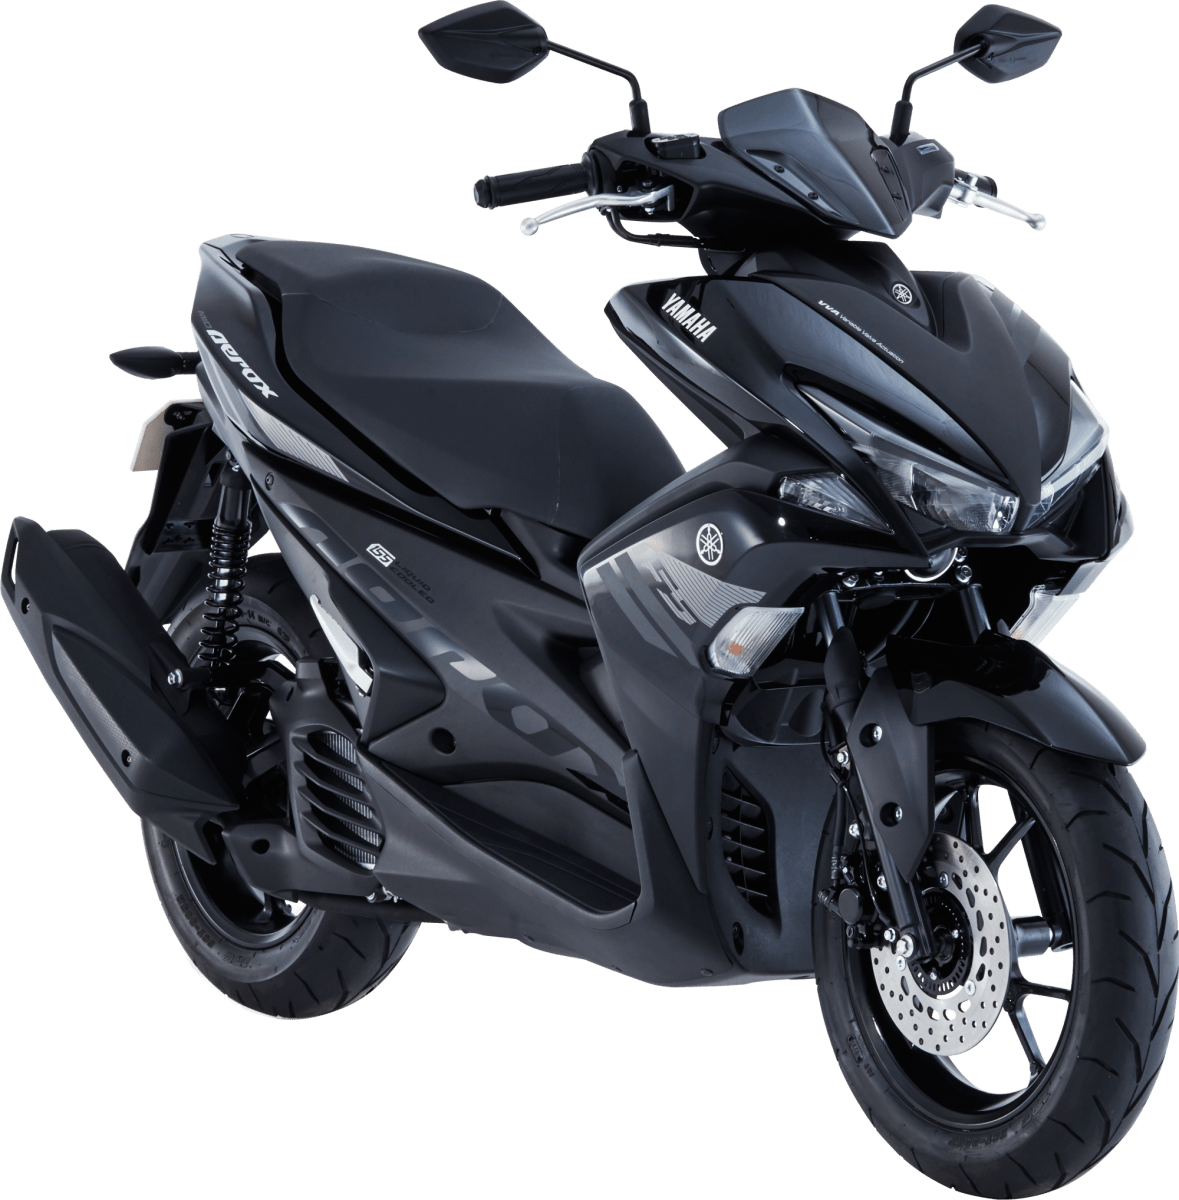 Yamaha Mio AEROX 155 : Availability and Price